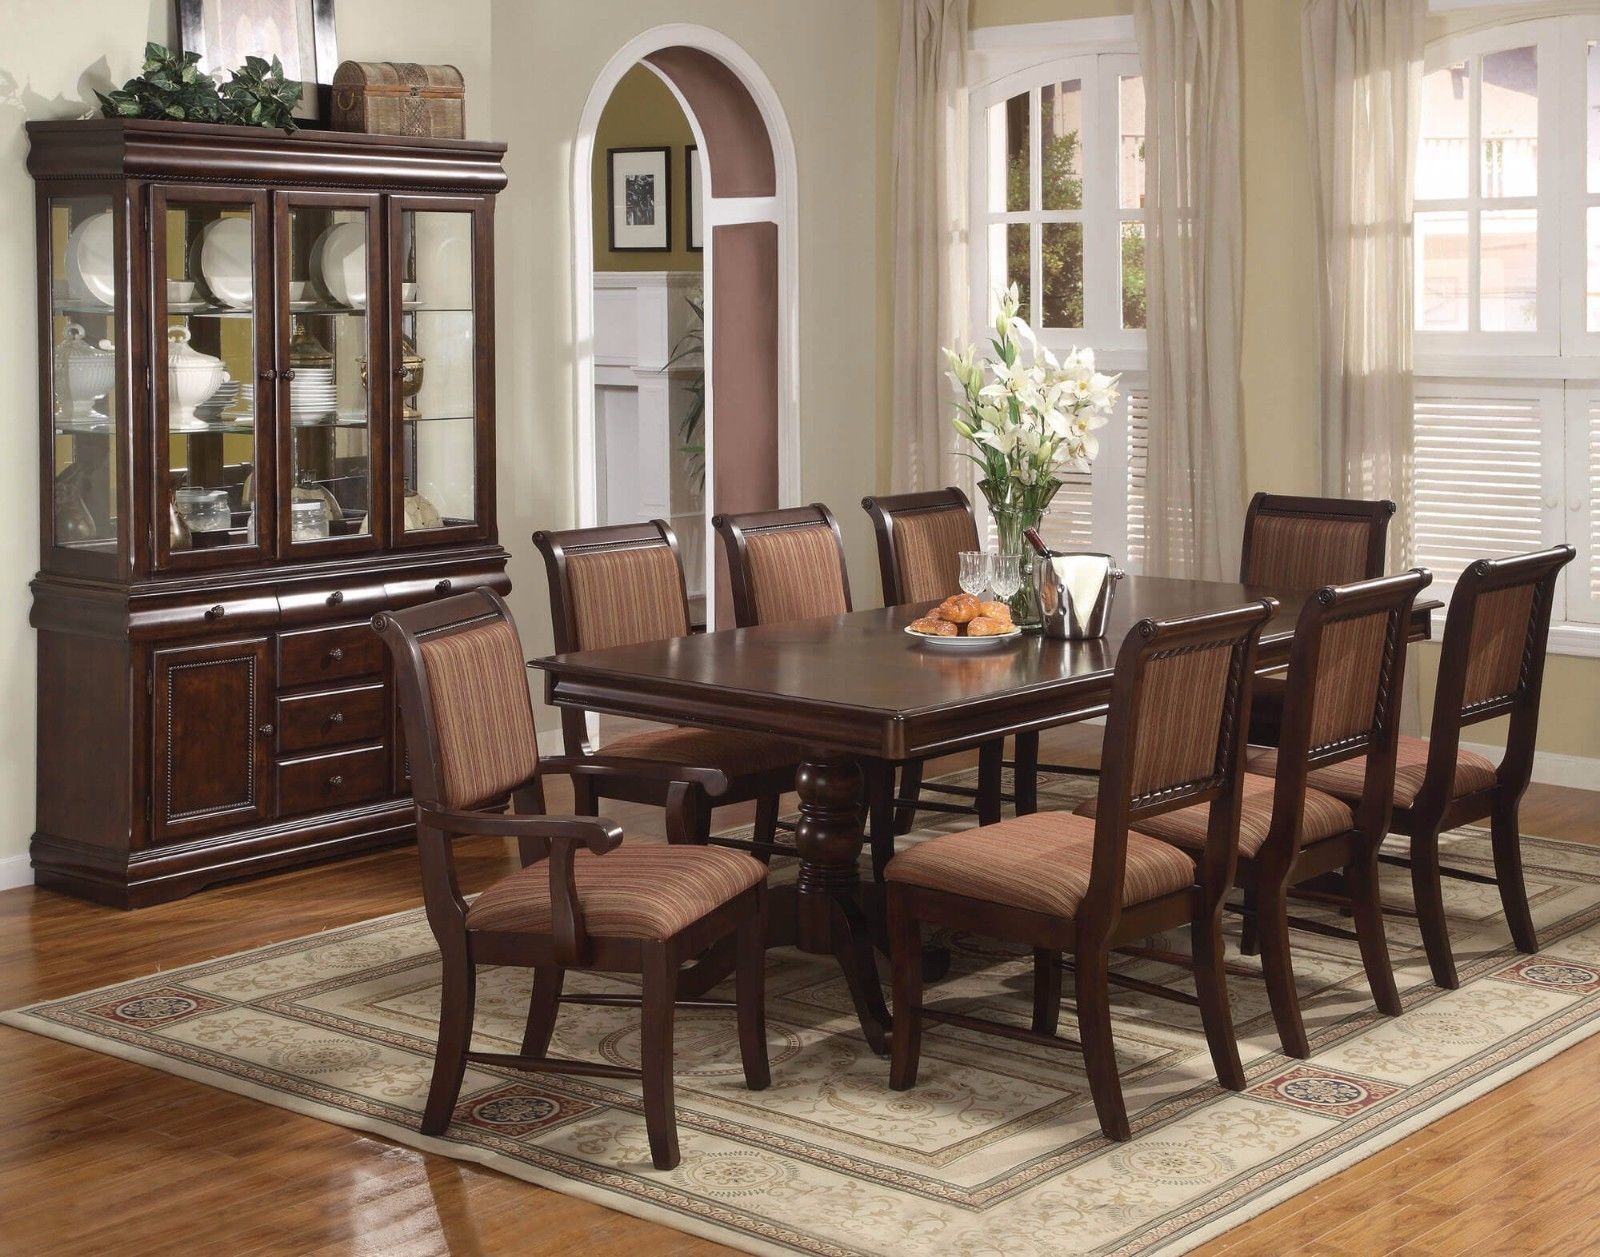 Crown Mark 2145 Dining Room Set 9pc. Merlot Cherry Finish Traditional Style